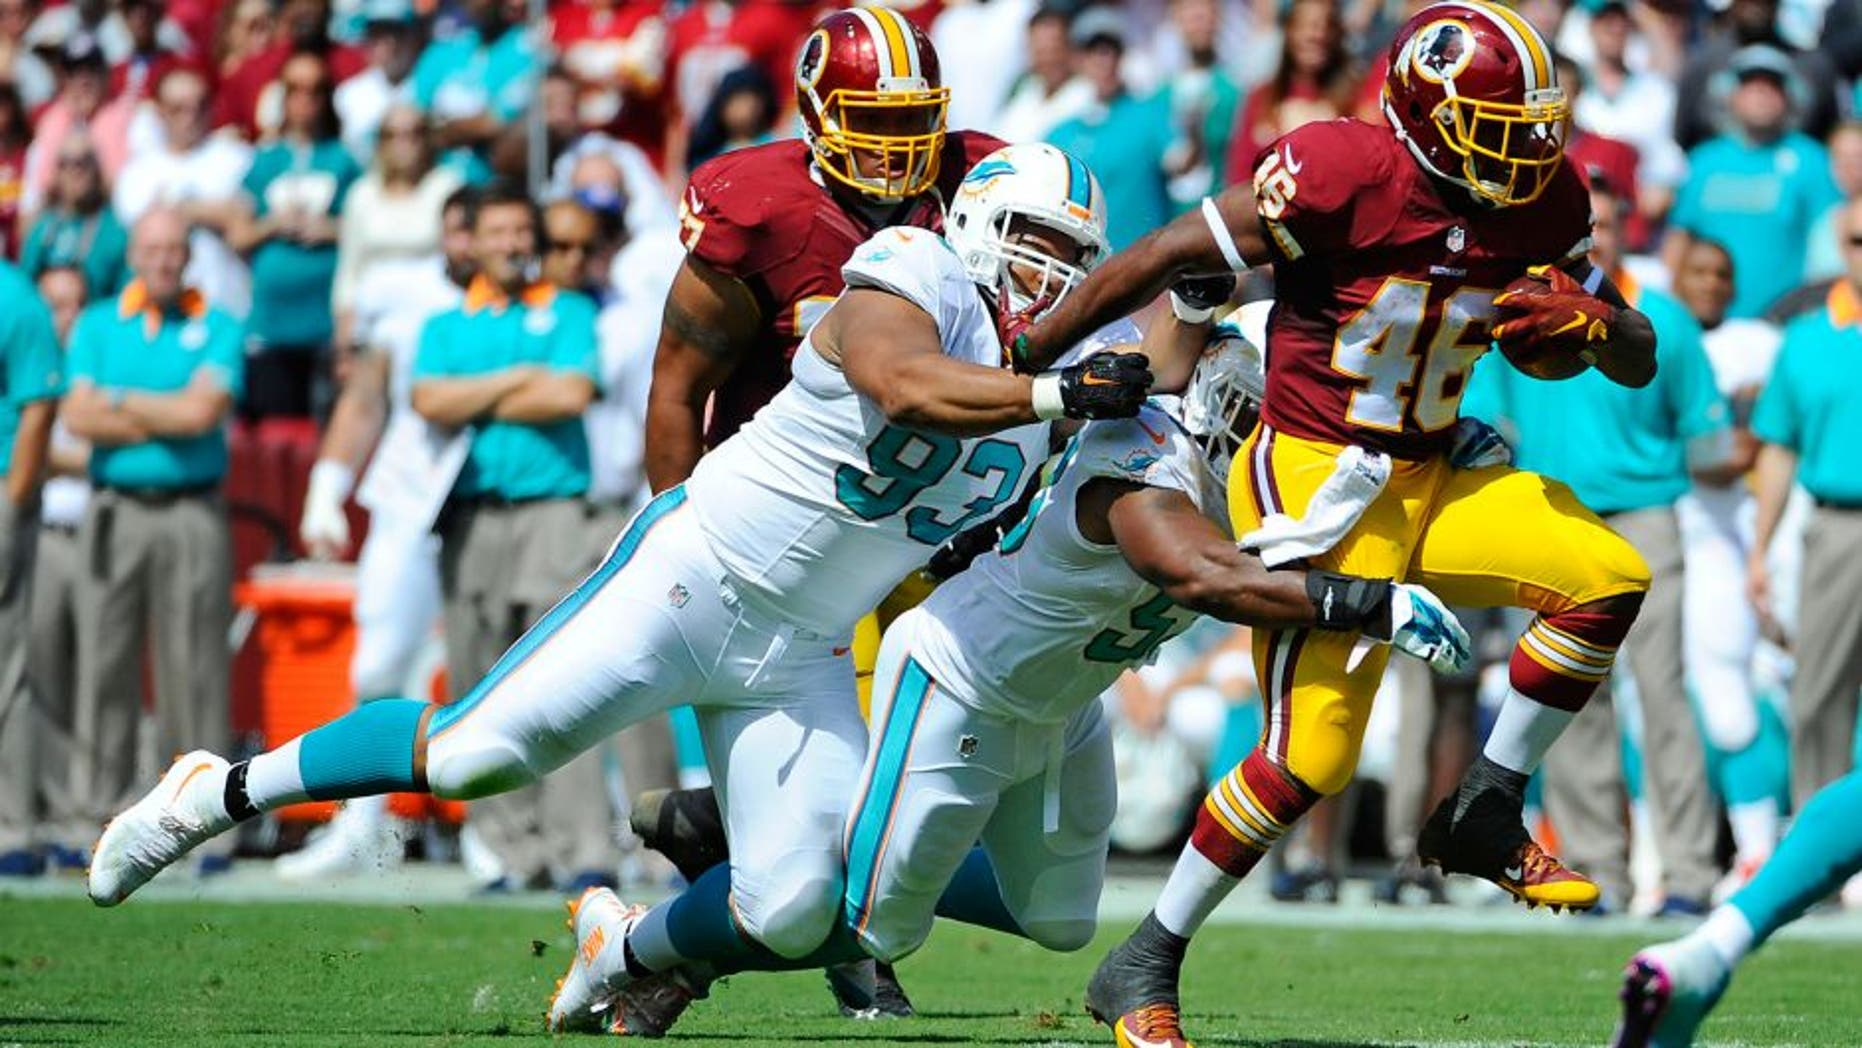 Sep 13, 2015; Landover, MD, USA; Washington Redskins running back Alfred Morris (46) is tackled by Miami Dolphins defensive tackle Ndamukong Suh (93) and outside linebacker Koa Misi (55) during the first half at FedEx Field. Mandatory Credit: Brad Mills-USA TODAY Sports